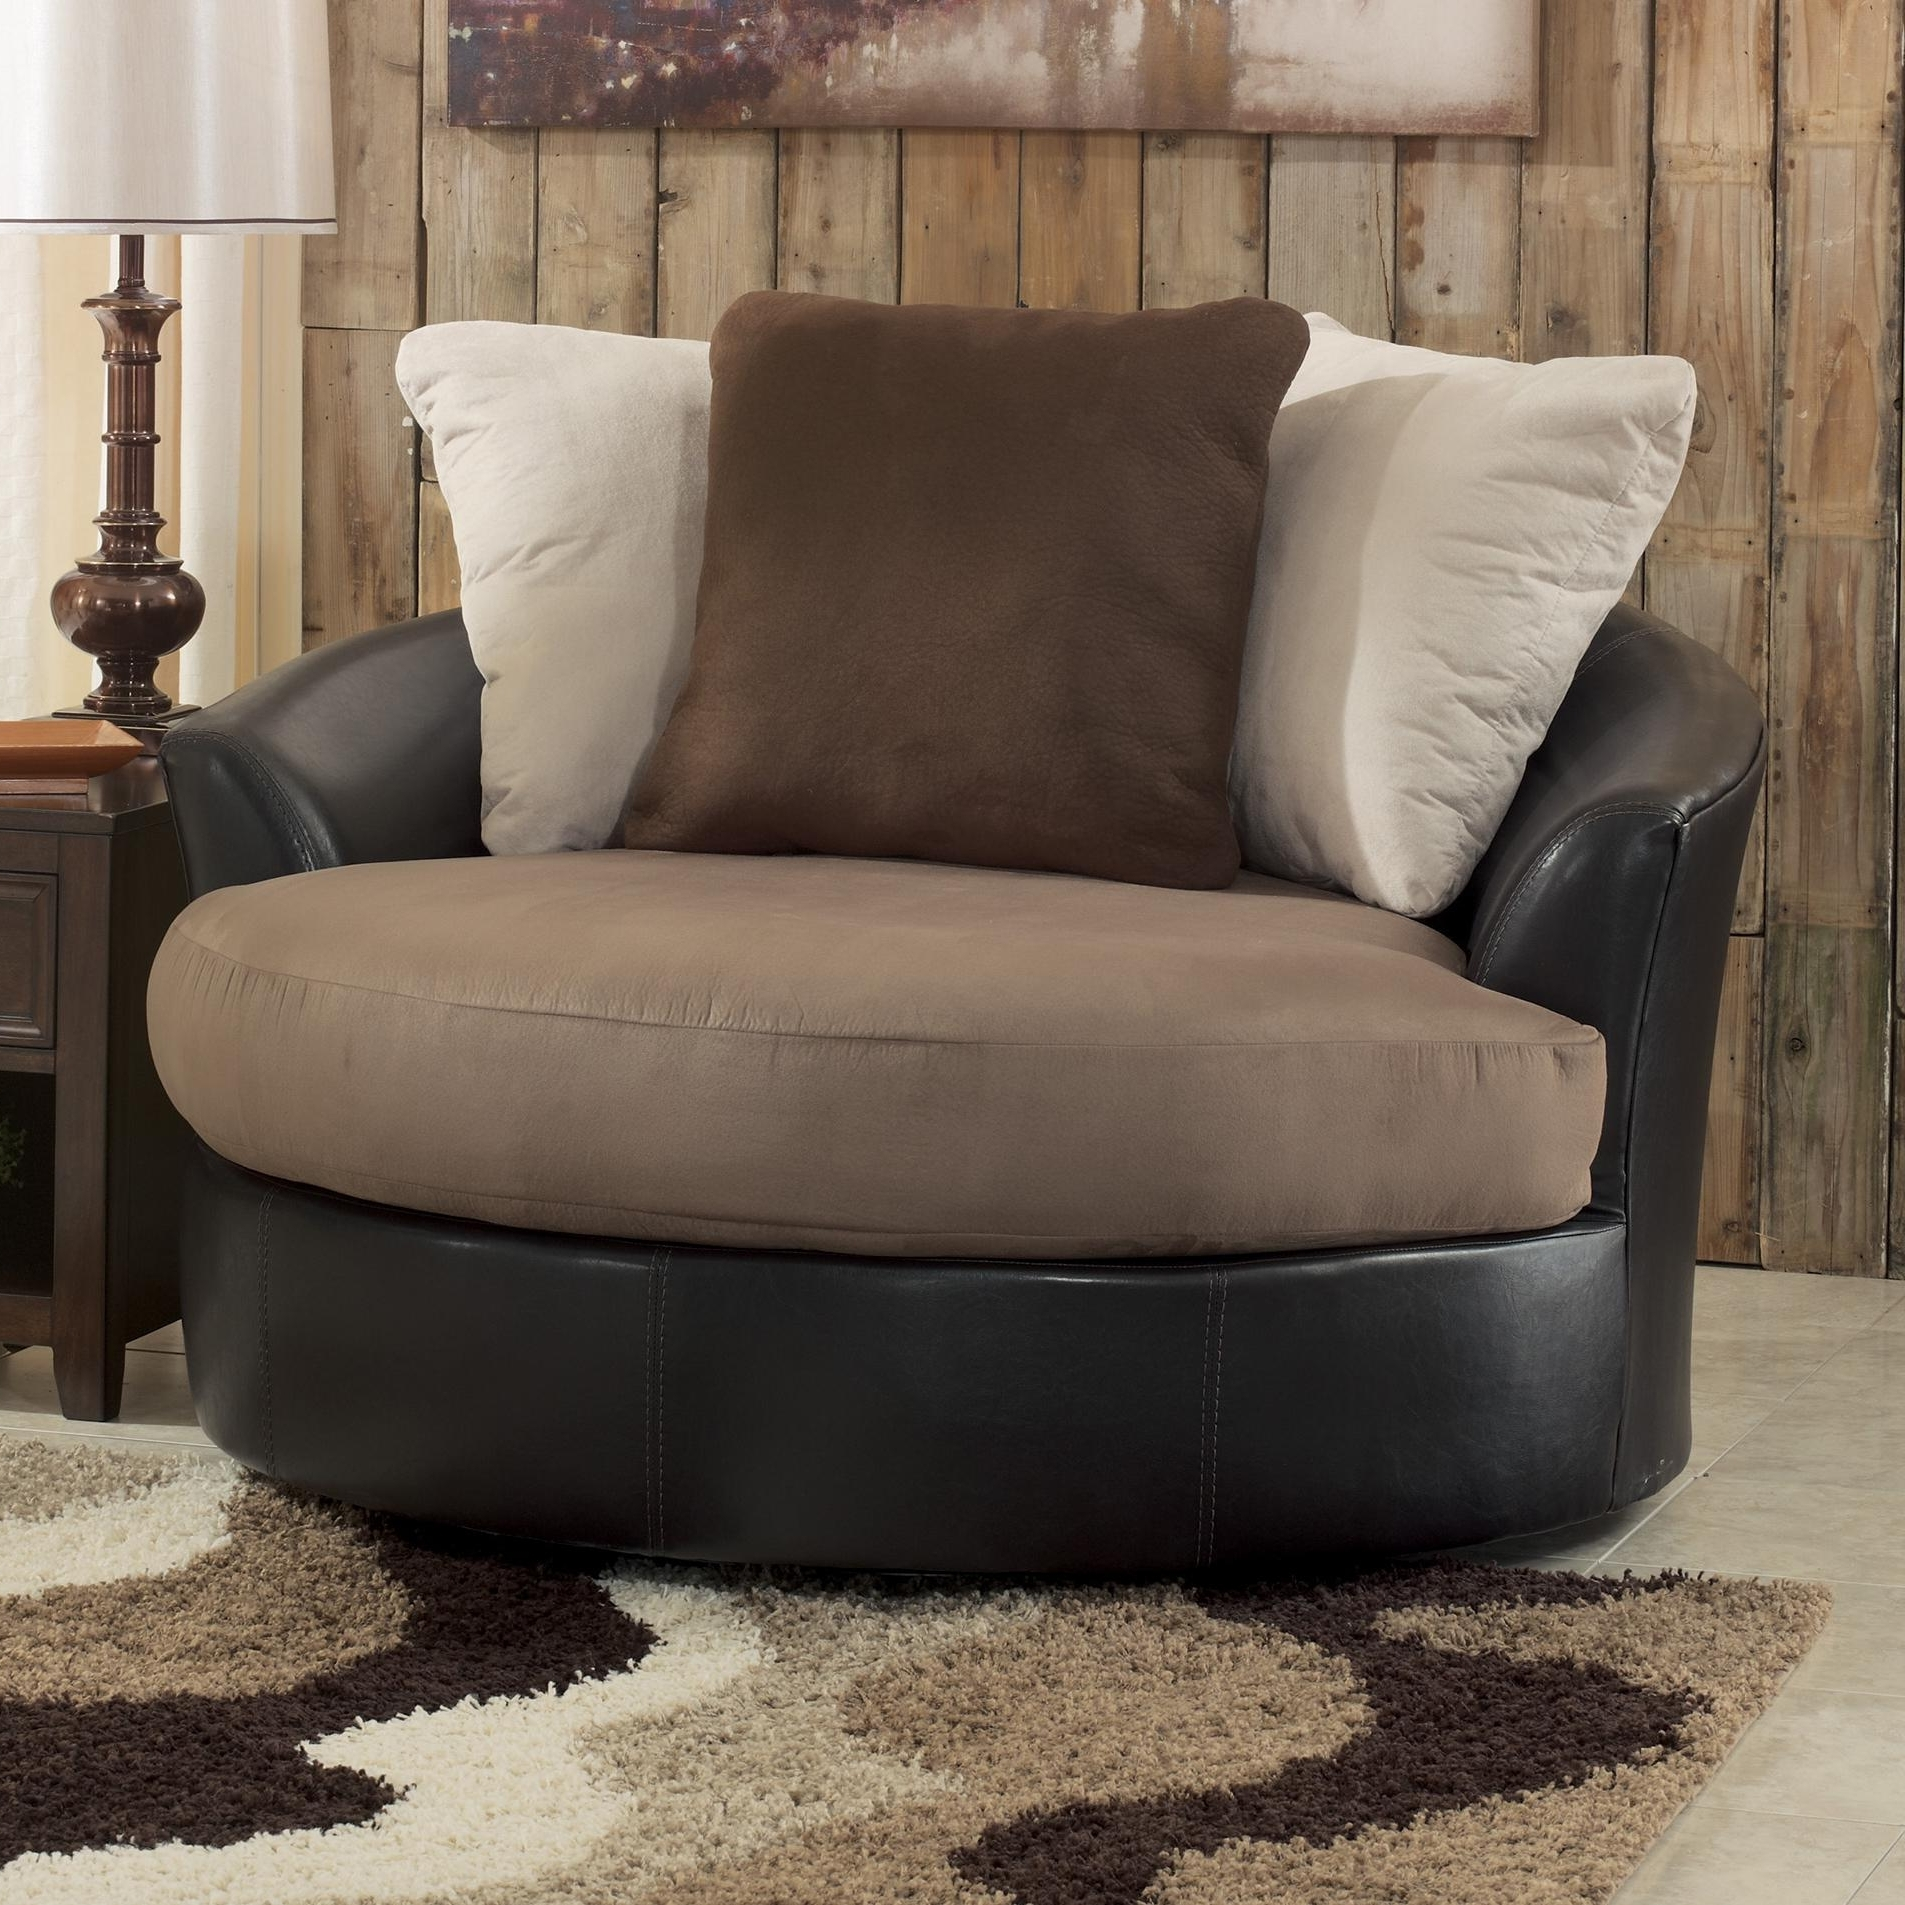 Most Up To Date Sofa : Excellent Round Sofa Chair Living Room Furniture Harveys Regarding Large Sofa Chairs (View 11 of 15)